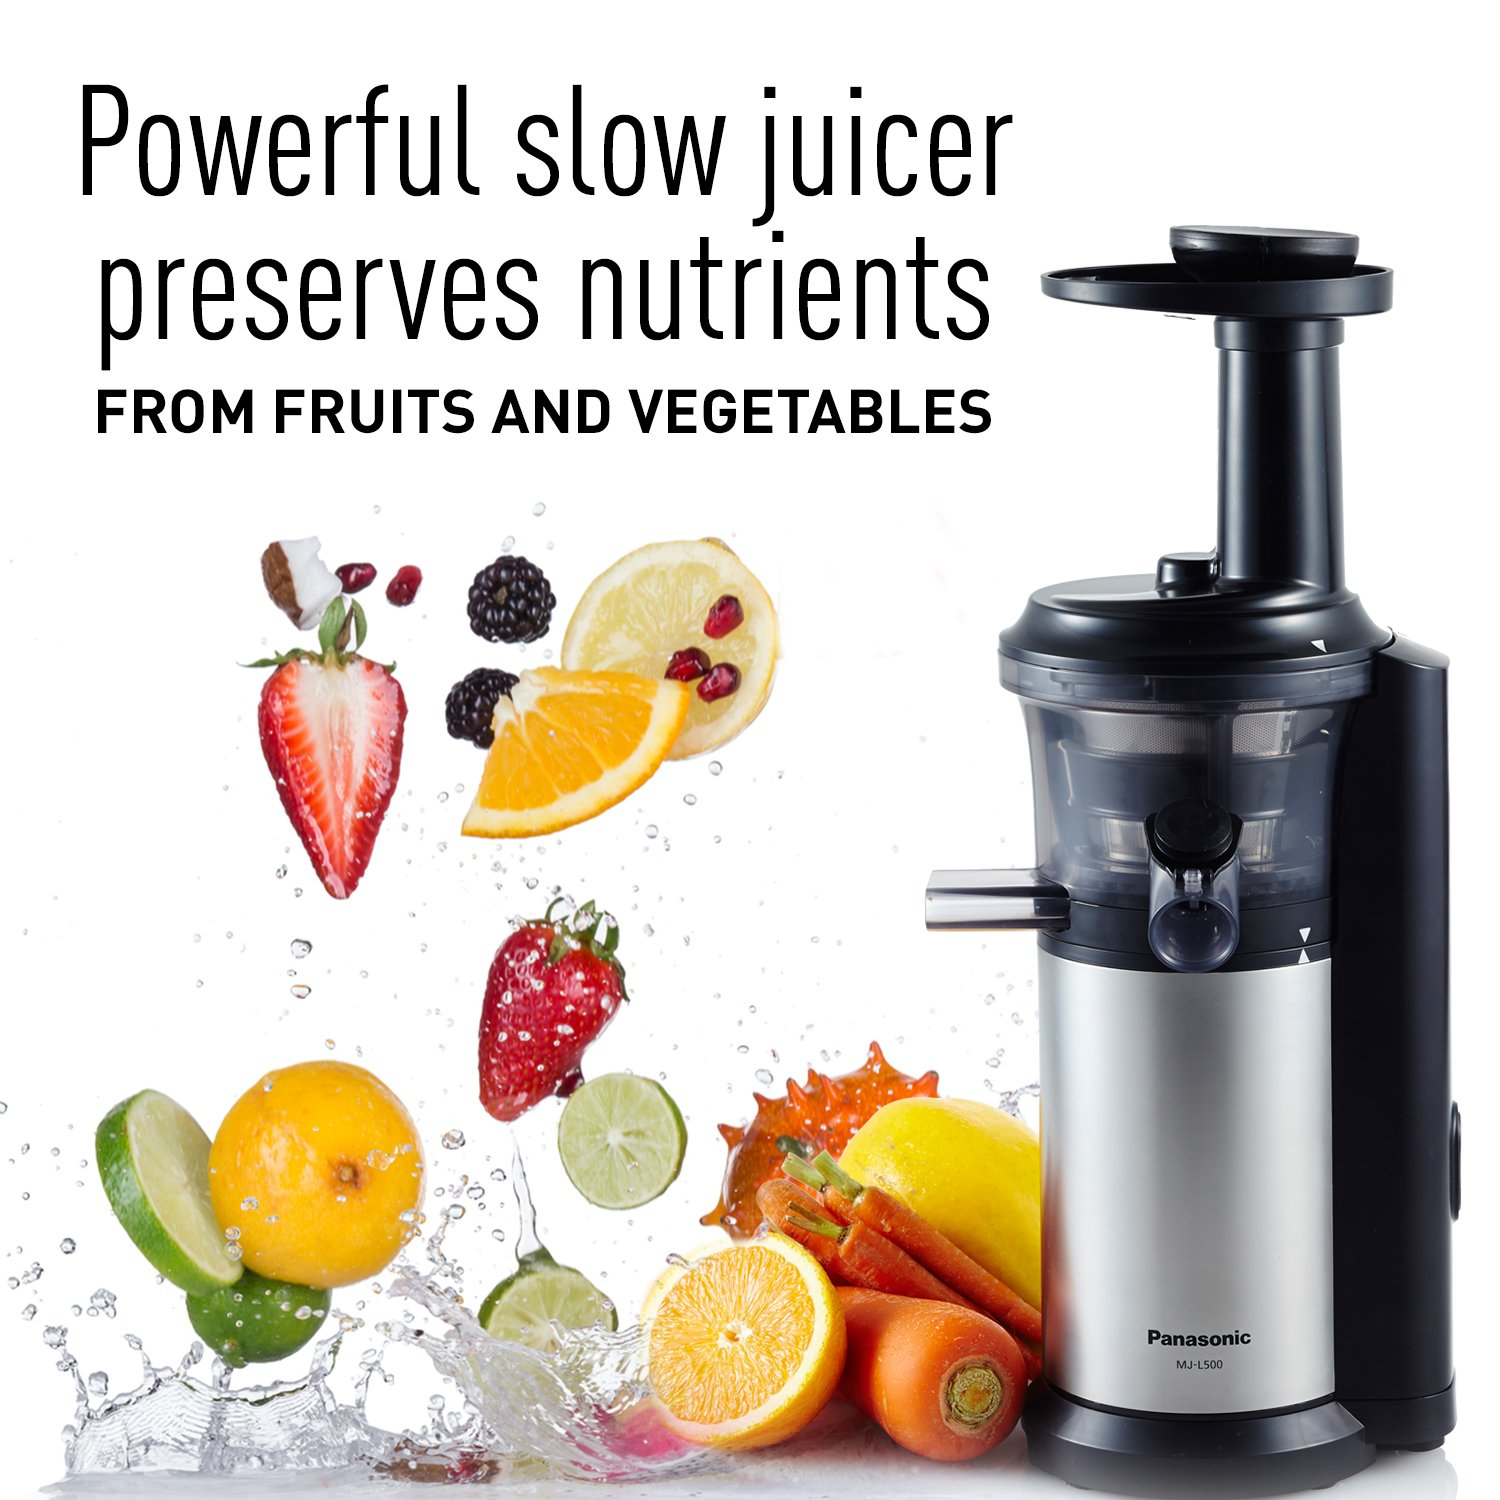 Vremi Slow Juicer Reviews : Slow Juicer Reviews. Hurom Slow Juicer. Juices. . Kuvings Nje3580u Masticating Slow Juicer ...